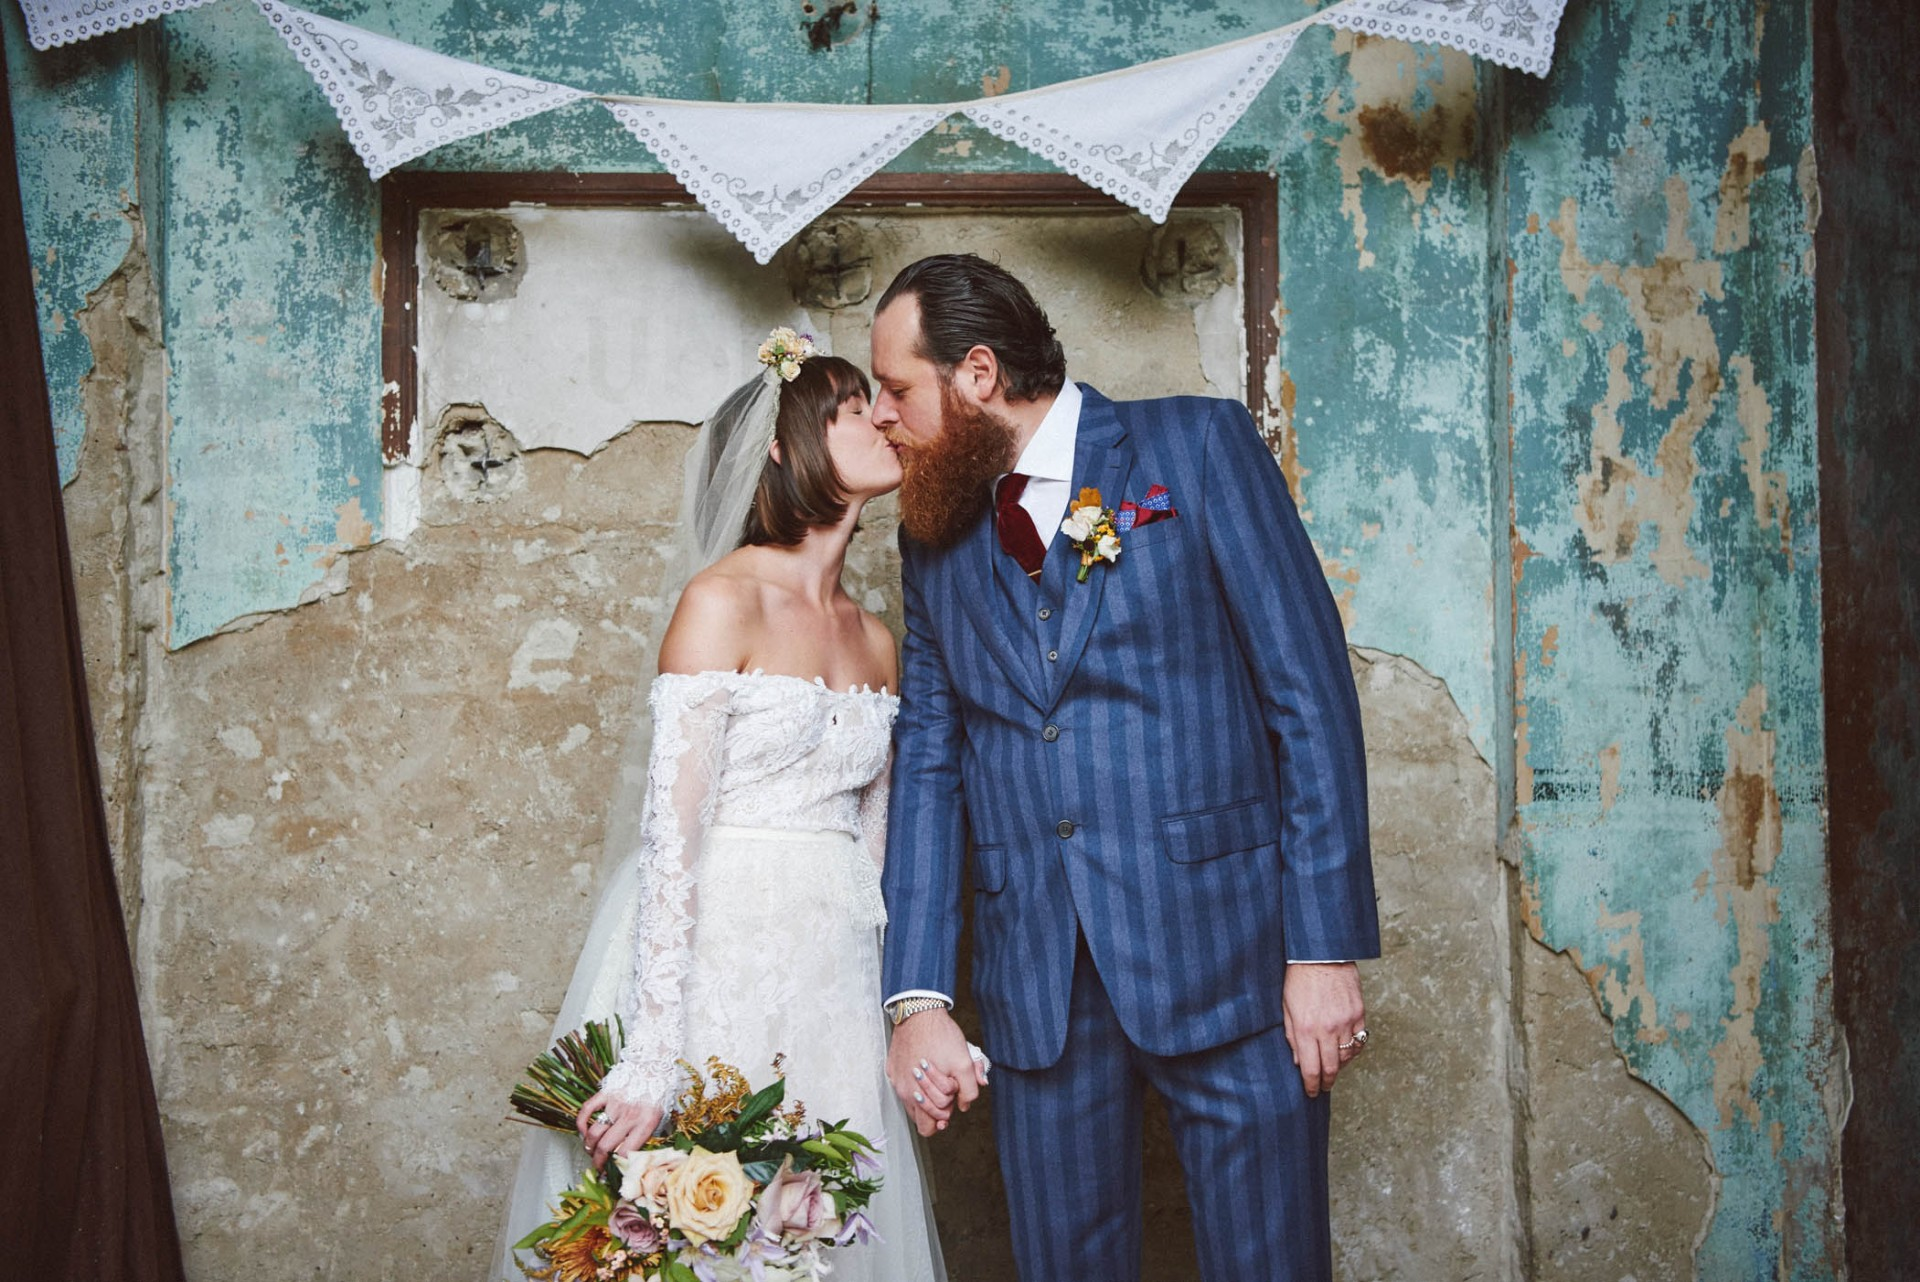 vintage looking bride and groom kissing in front a decaying wall at the Asylum in London